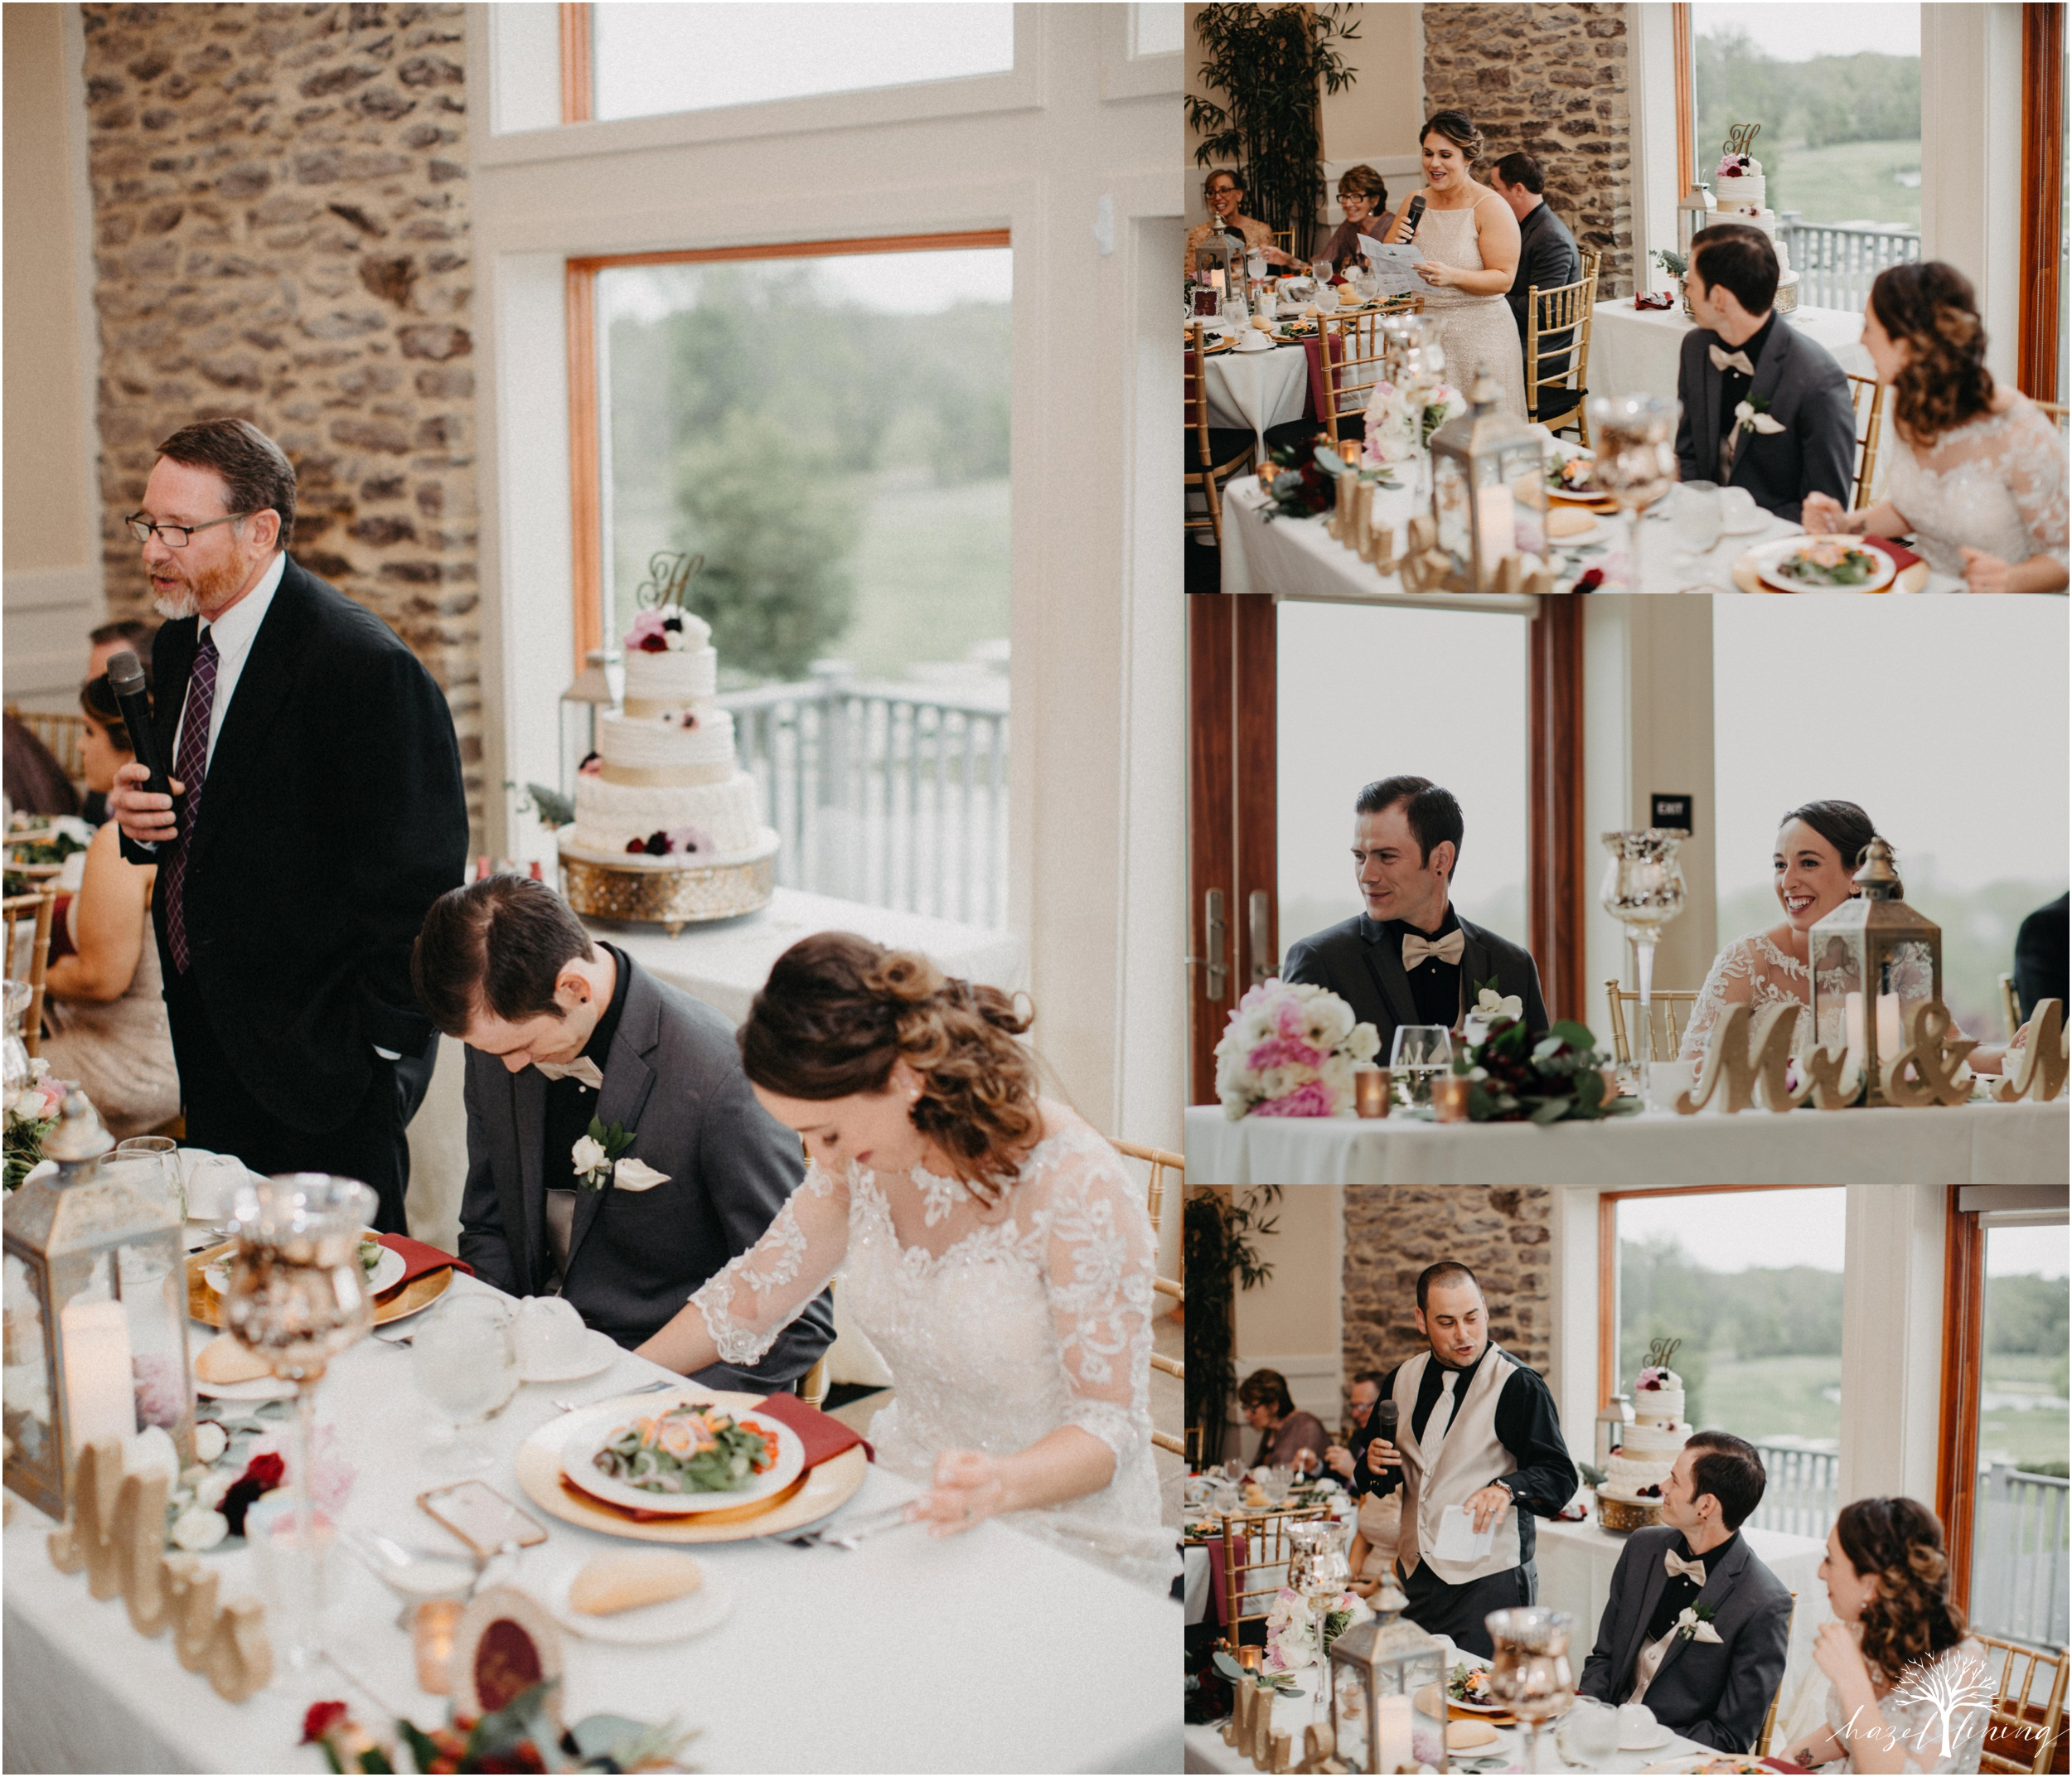 liz-blair-loft-at-sweetwater-cc-pennsburg-pa-spring-wedding-hazel-lining-photography-destination-elopement-wedding-engagement-photography-year-in-review_0182.jpg